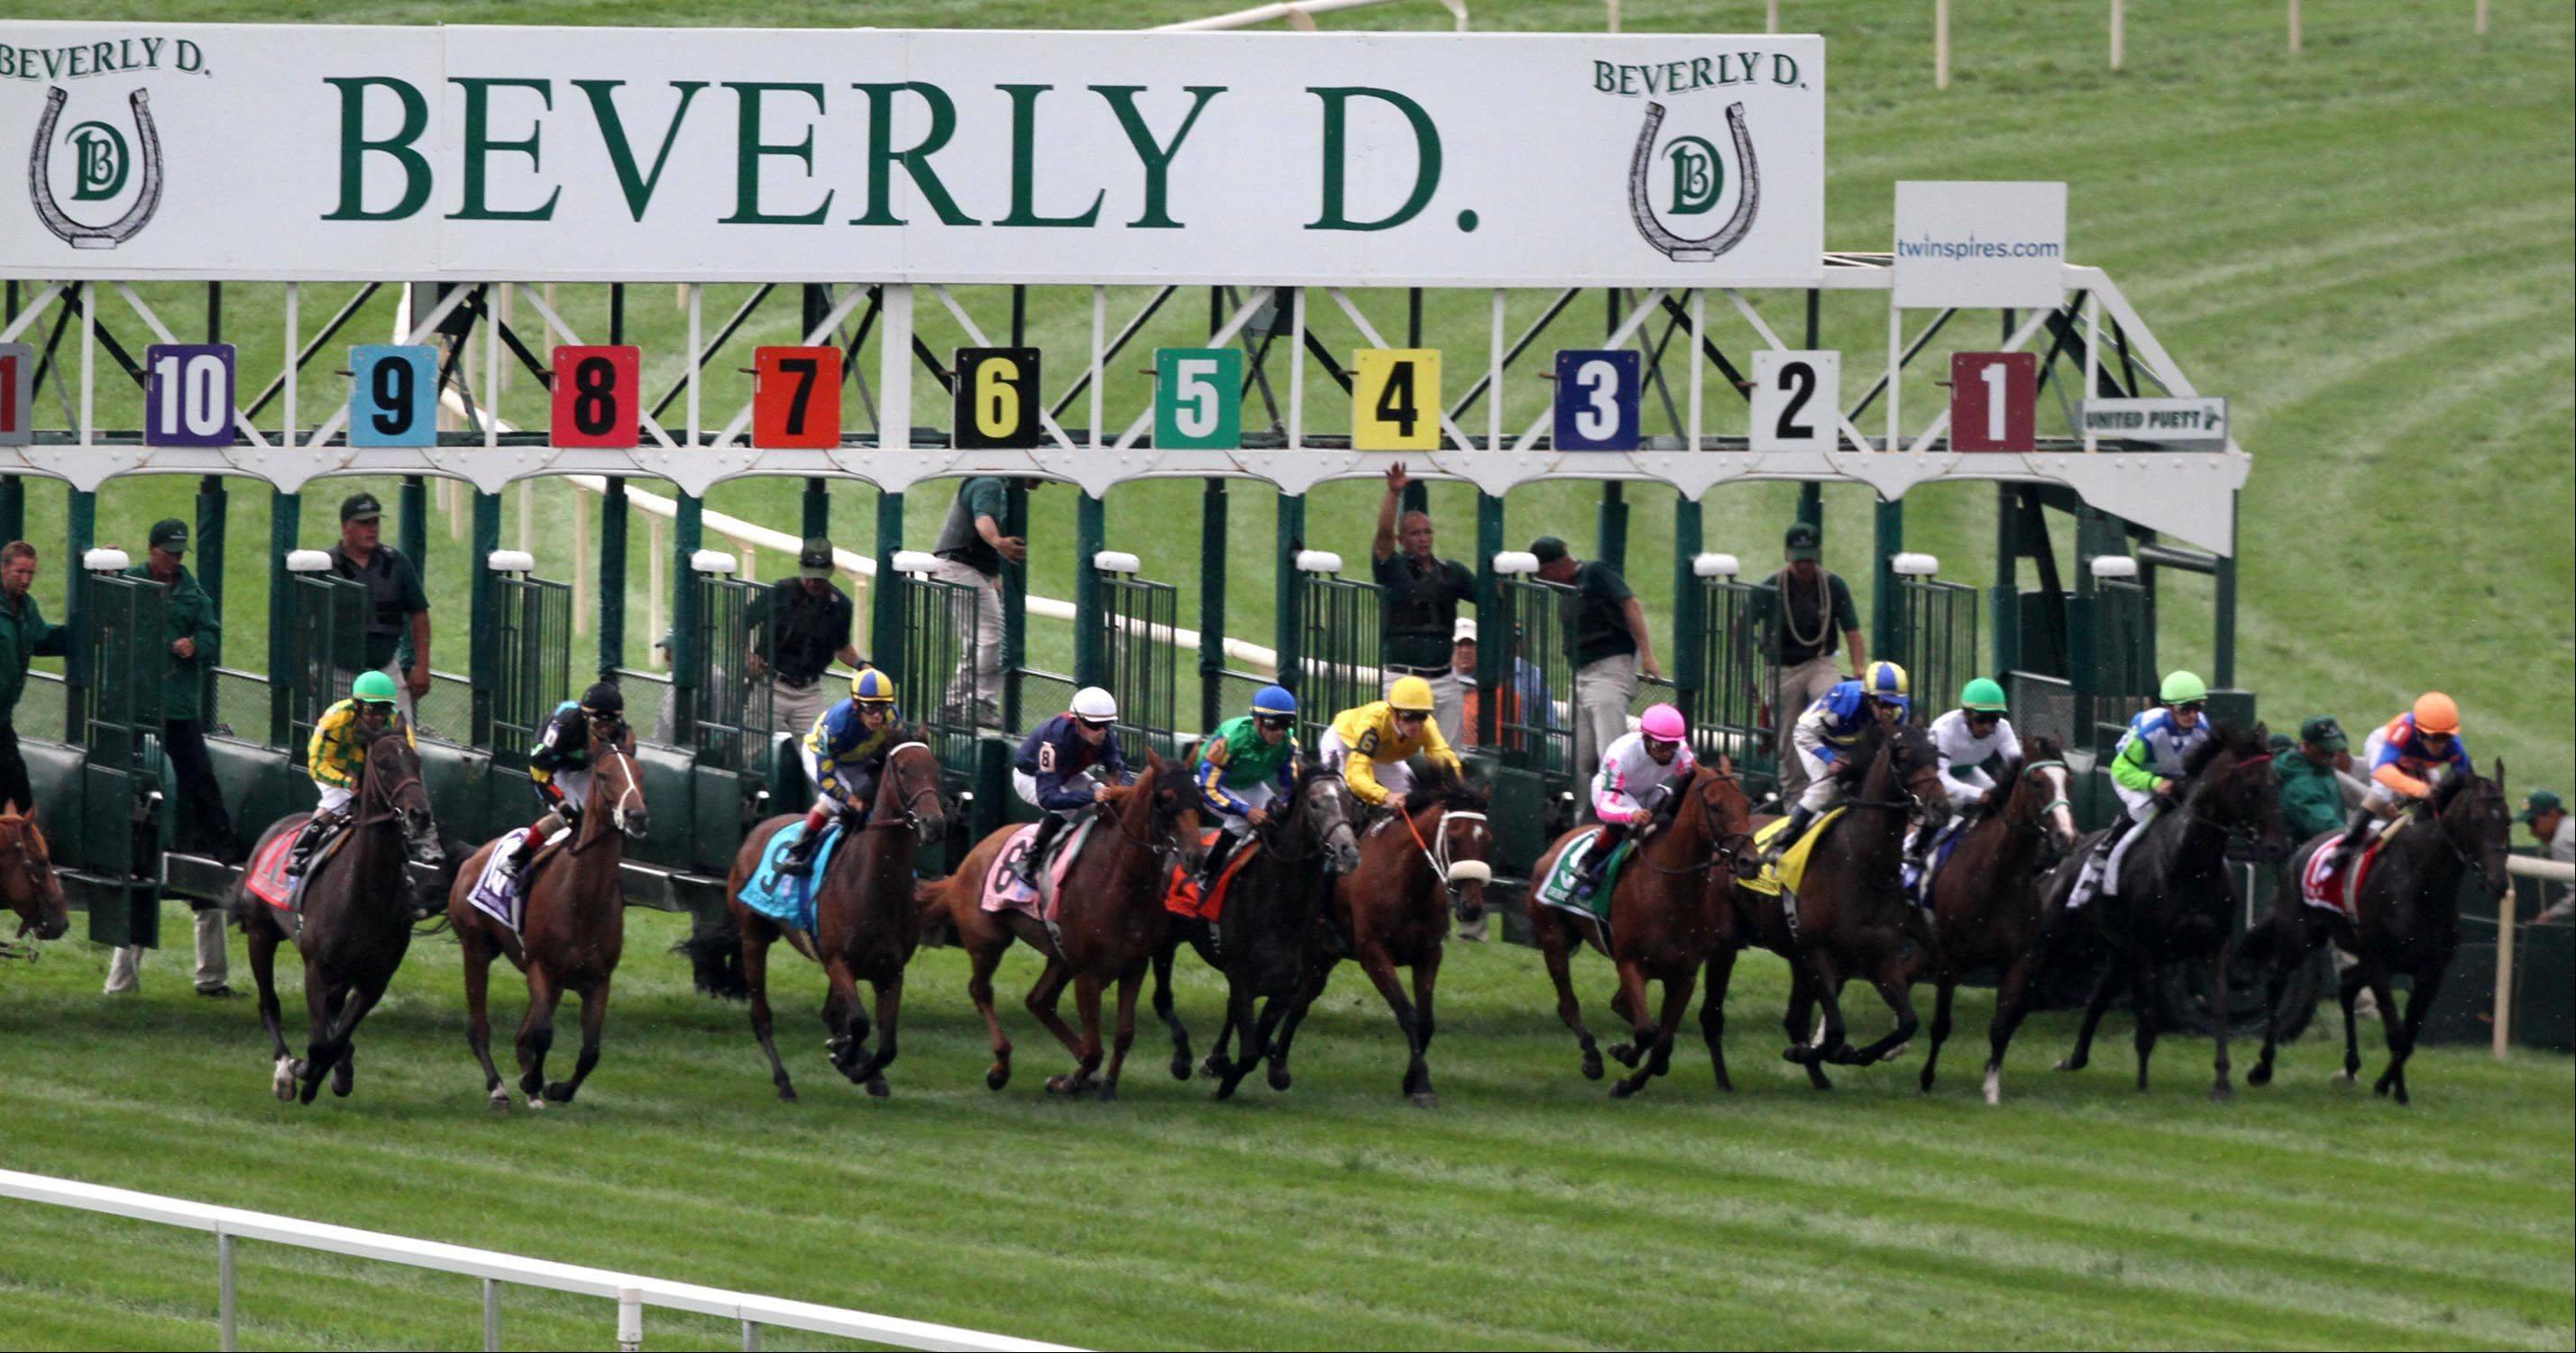 The start of the Beverly D. at Arlington Park on Saturday.